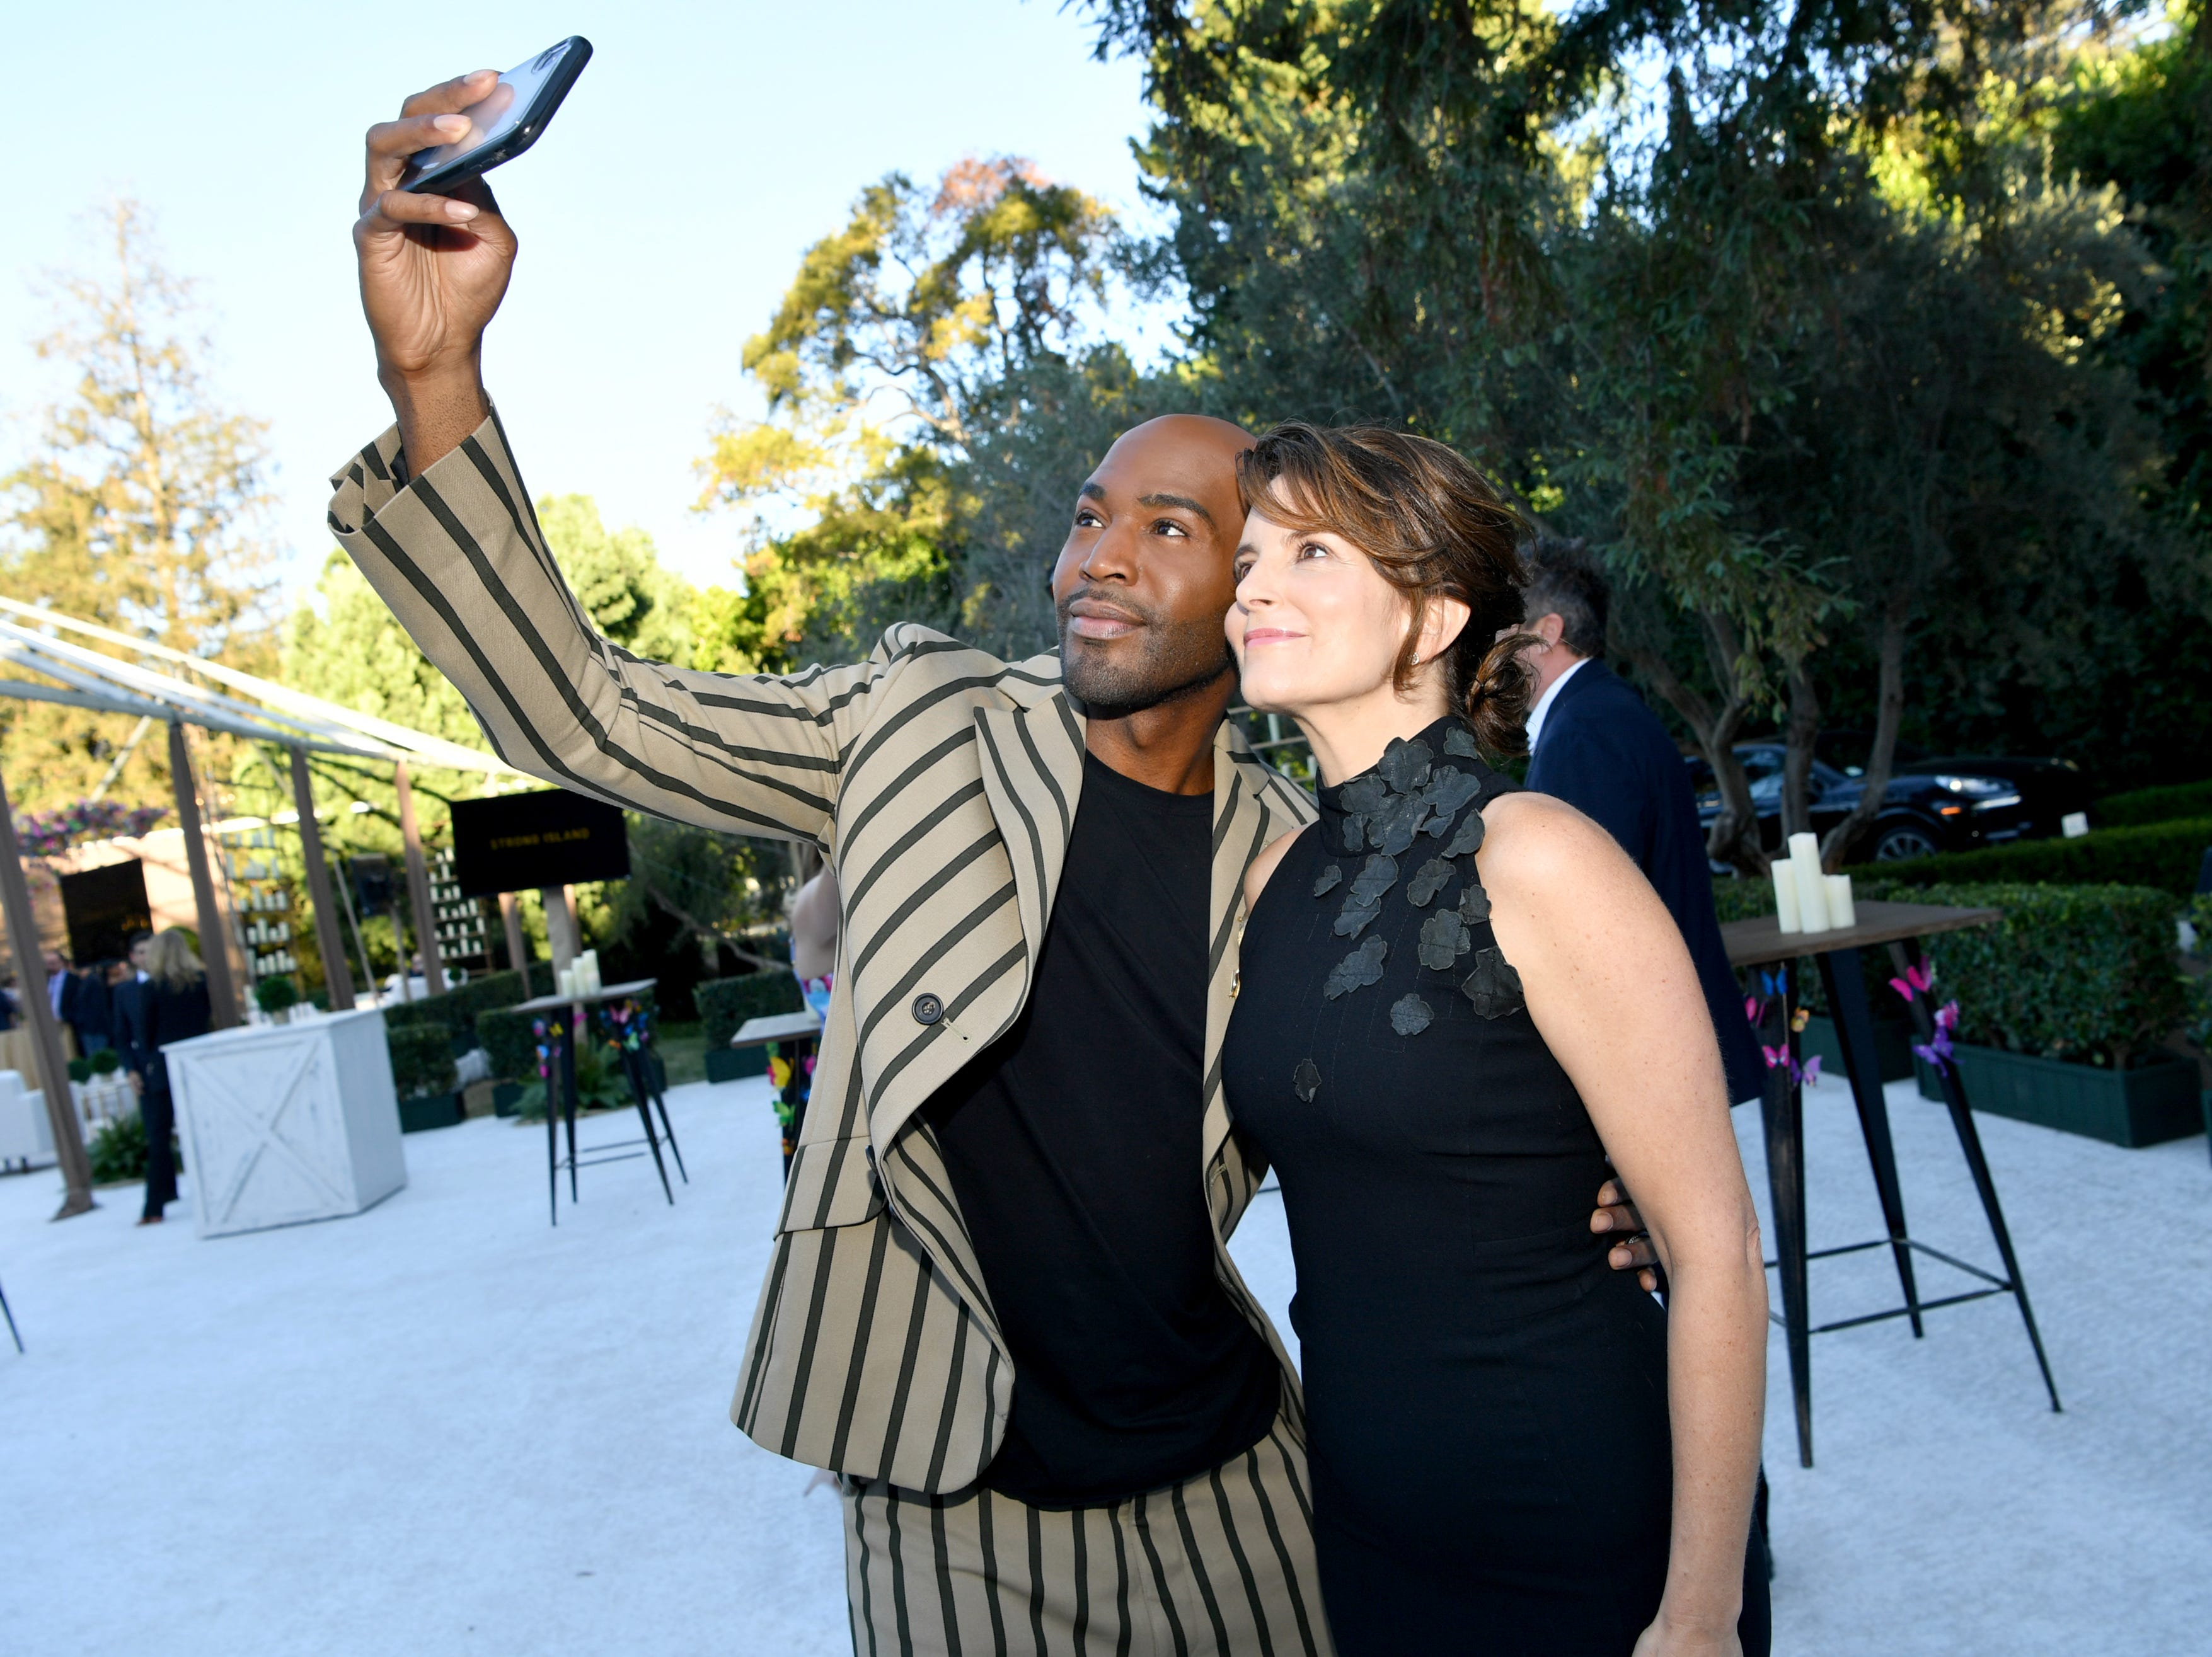 LOS ANGELES, CA - SEPTEMBER 15: Karamo Brown and Tina Fey attend Ted Sarandos' 2018 Annual Netflix Emmy Nominee Toast on September 15, 2018 in Los Angeles, California.  (Photo by Emma McIntyre/Getty Images for Netflix) ORG XMIT: 775217665 ORIG FILE ID: 1033989244